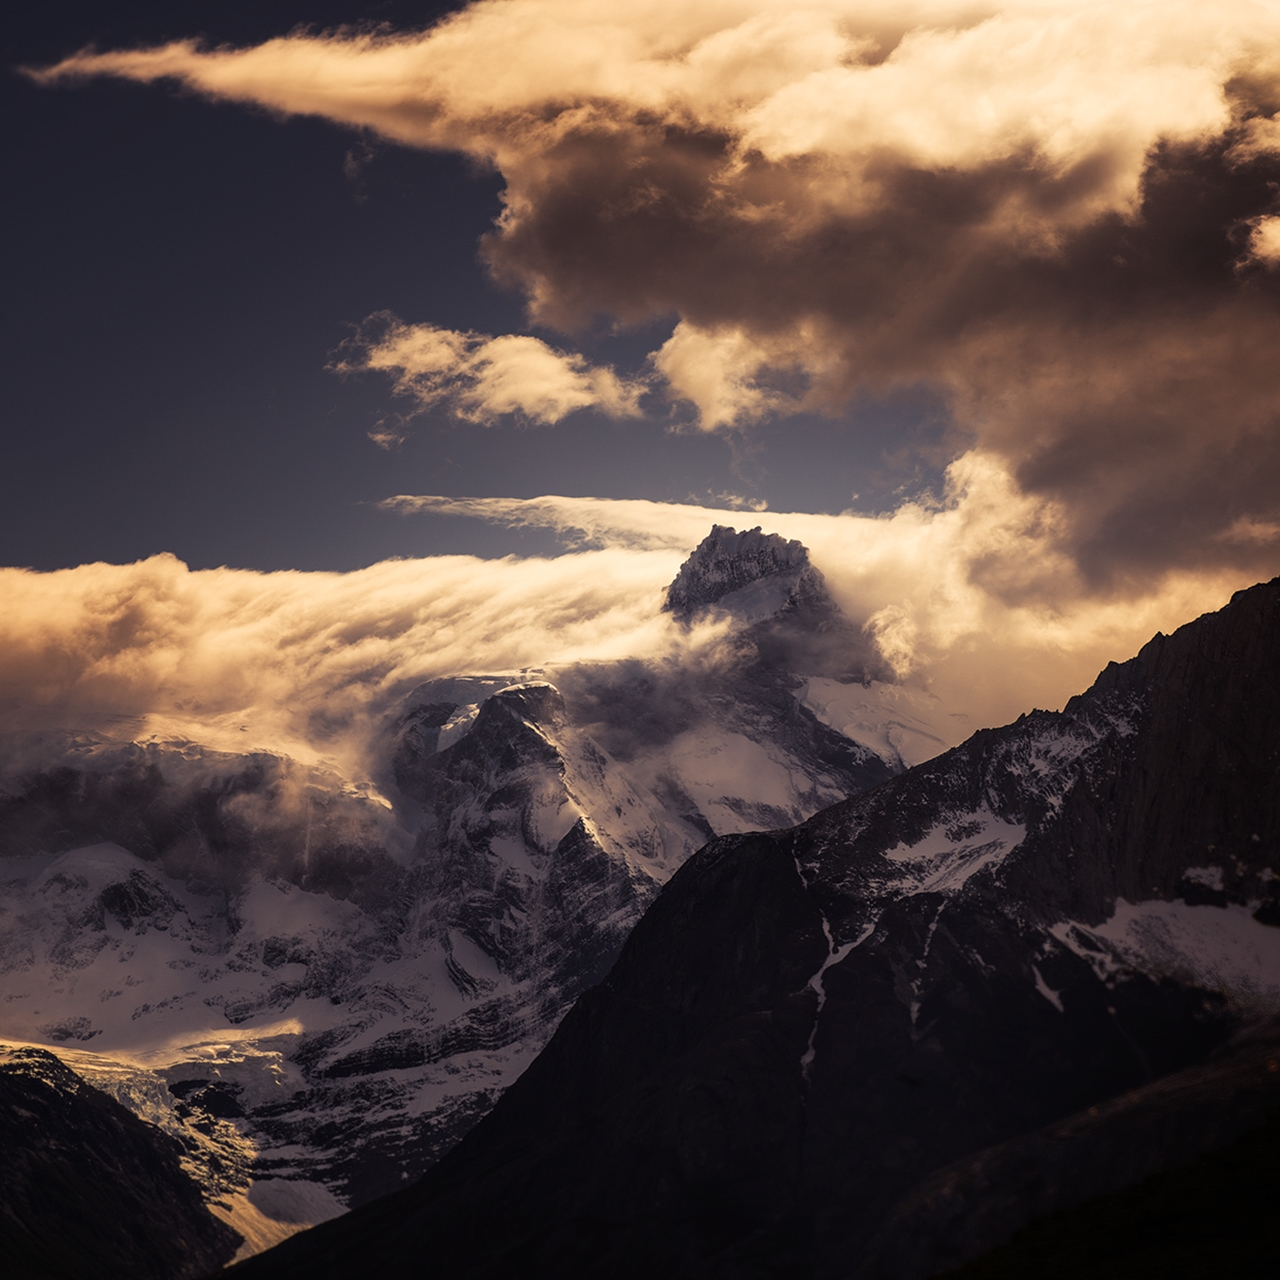 The beautiful scenery mountains Chile photos Andy Lee 14